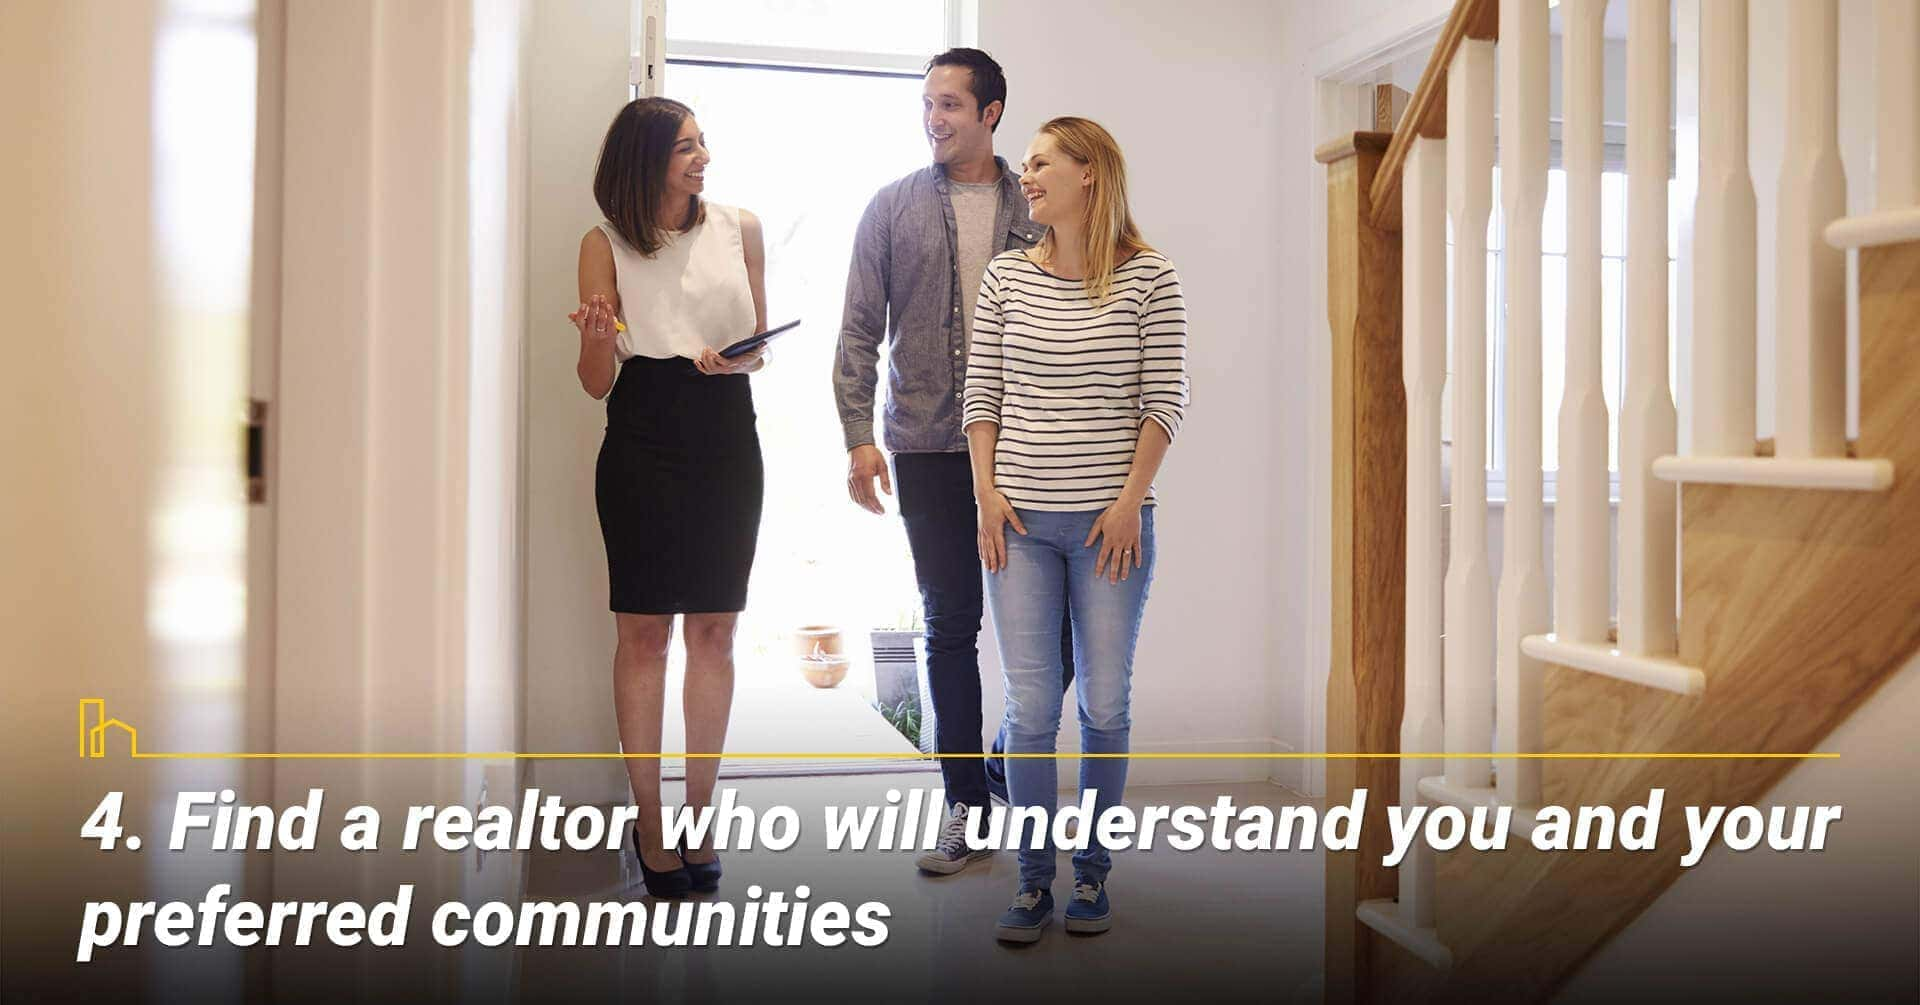 Find a realtor who will understand you and your preferred communities